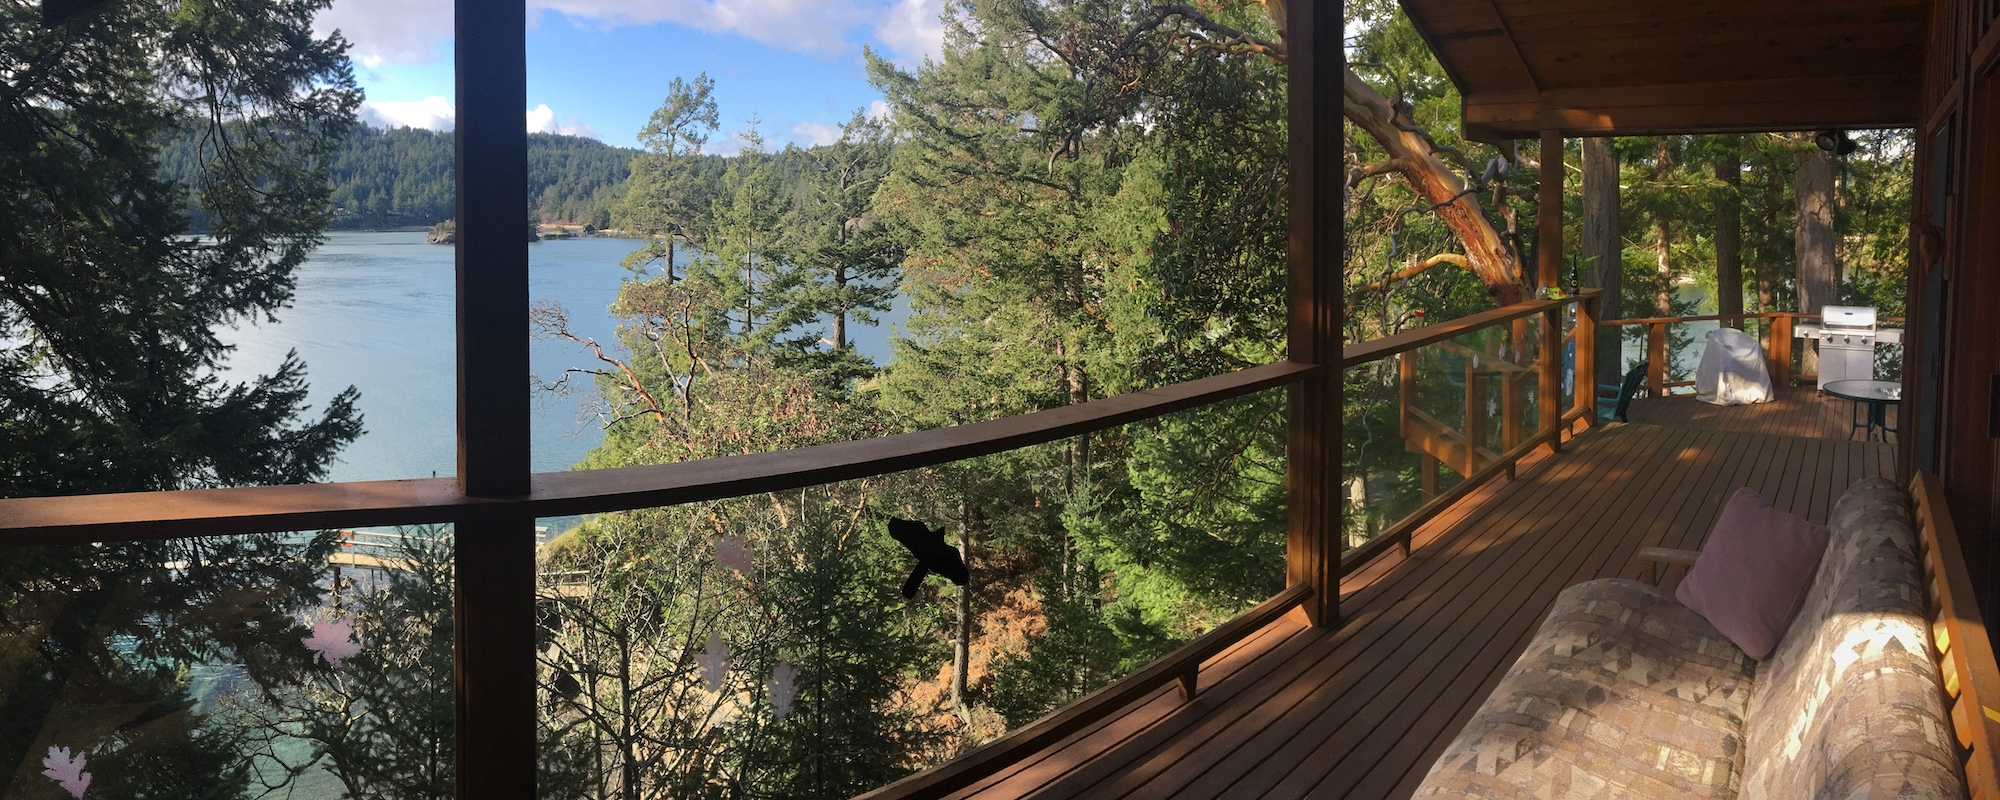 Ainslie Point Cottage vacation rental with ocean views from deck on Pender Island